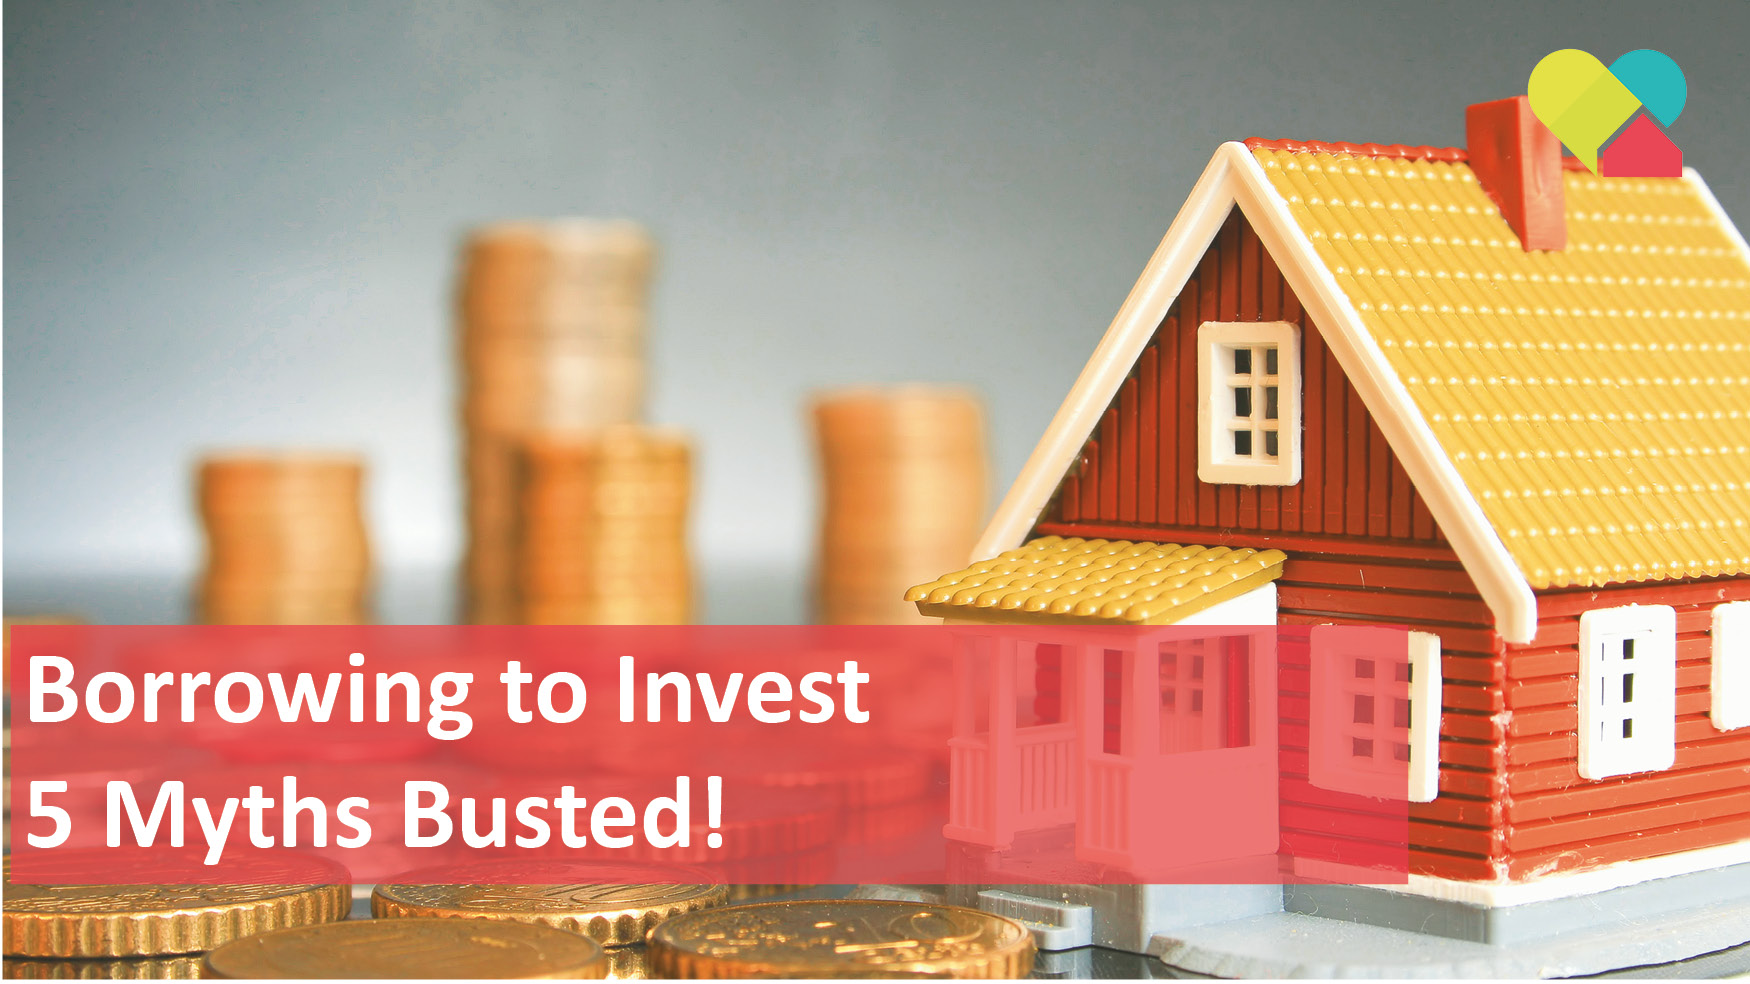 Borrowing to Invest - 5 Myths Busted!